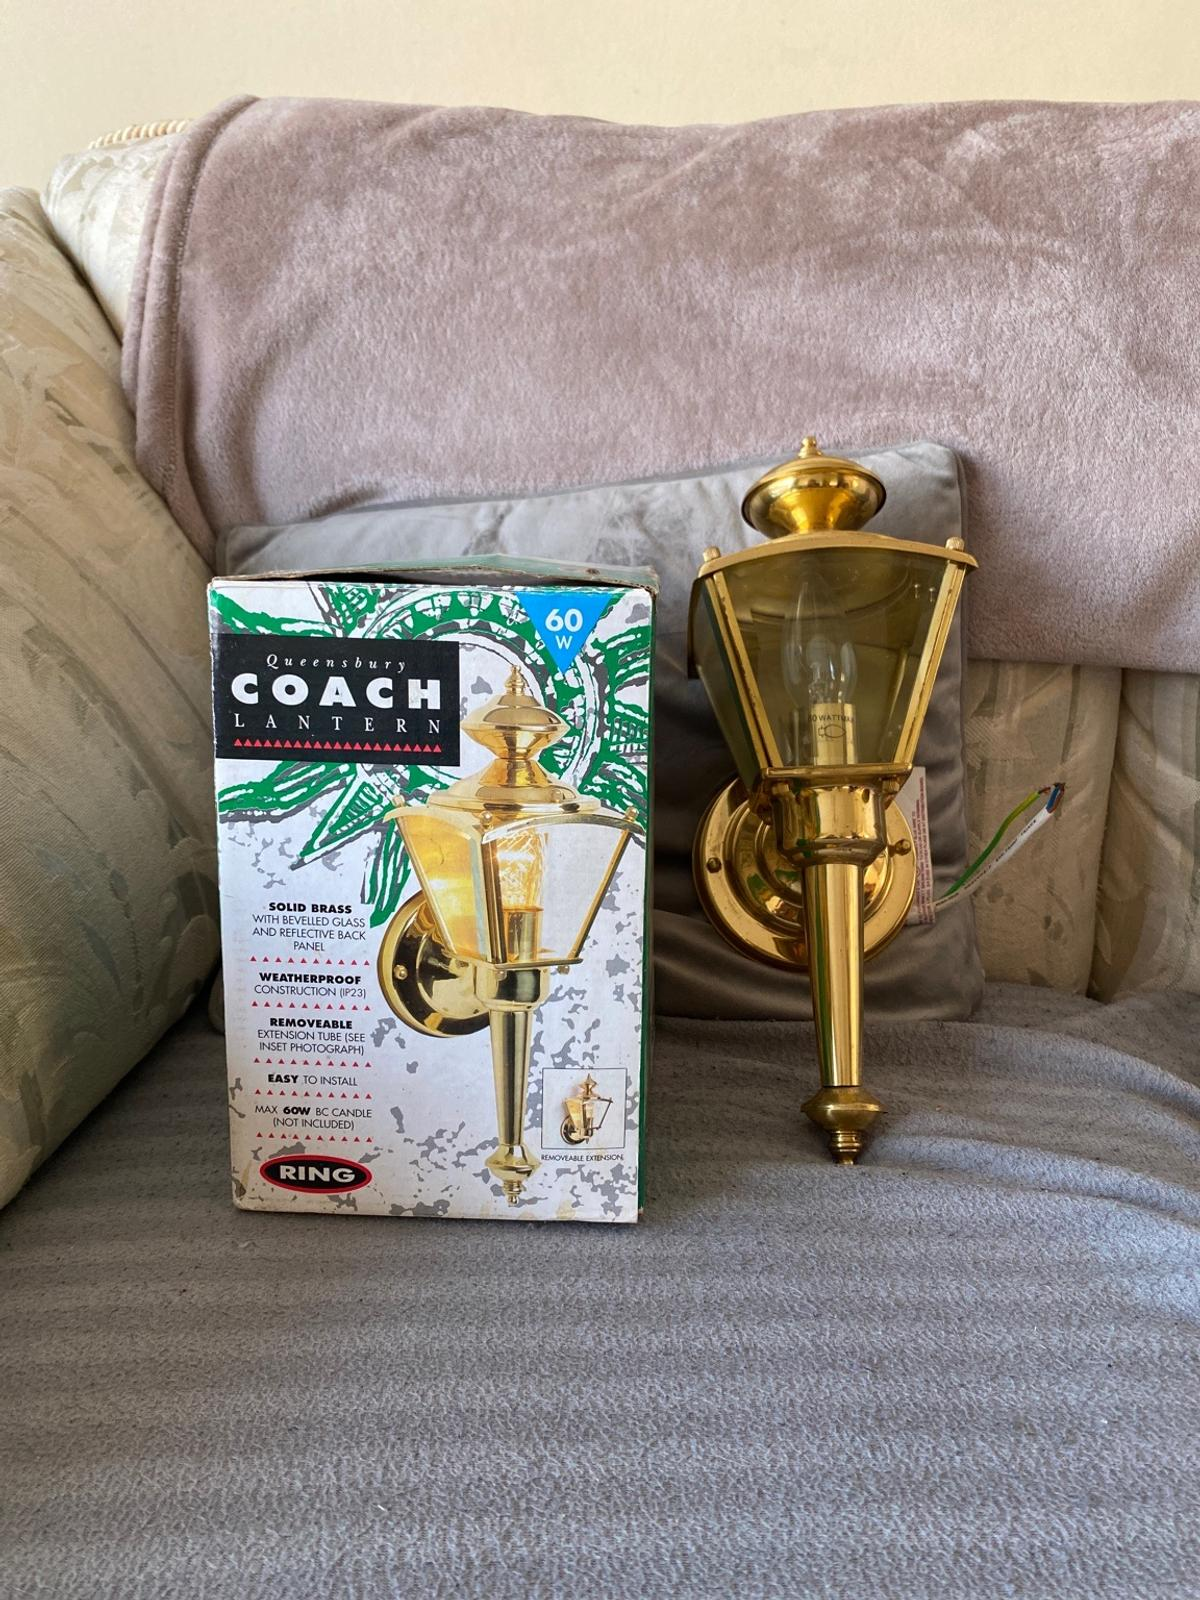 Queensbury Brass Coach Lantern Weatherproof Brand new comes in original box with instructions and fixings-wall plugs and screws